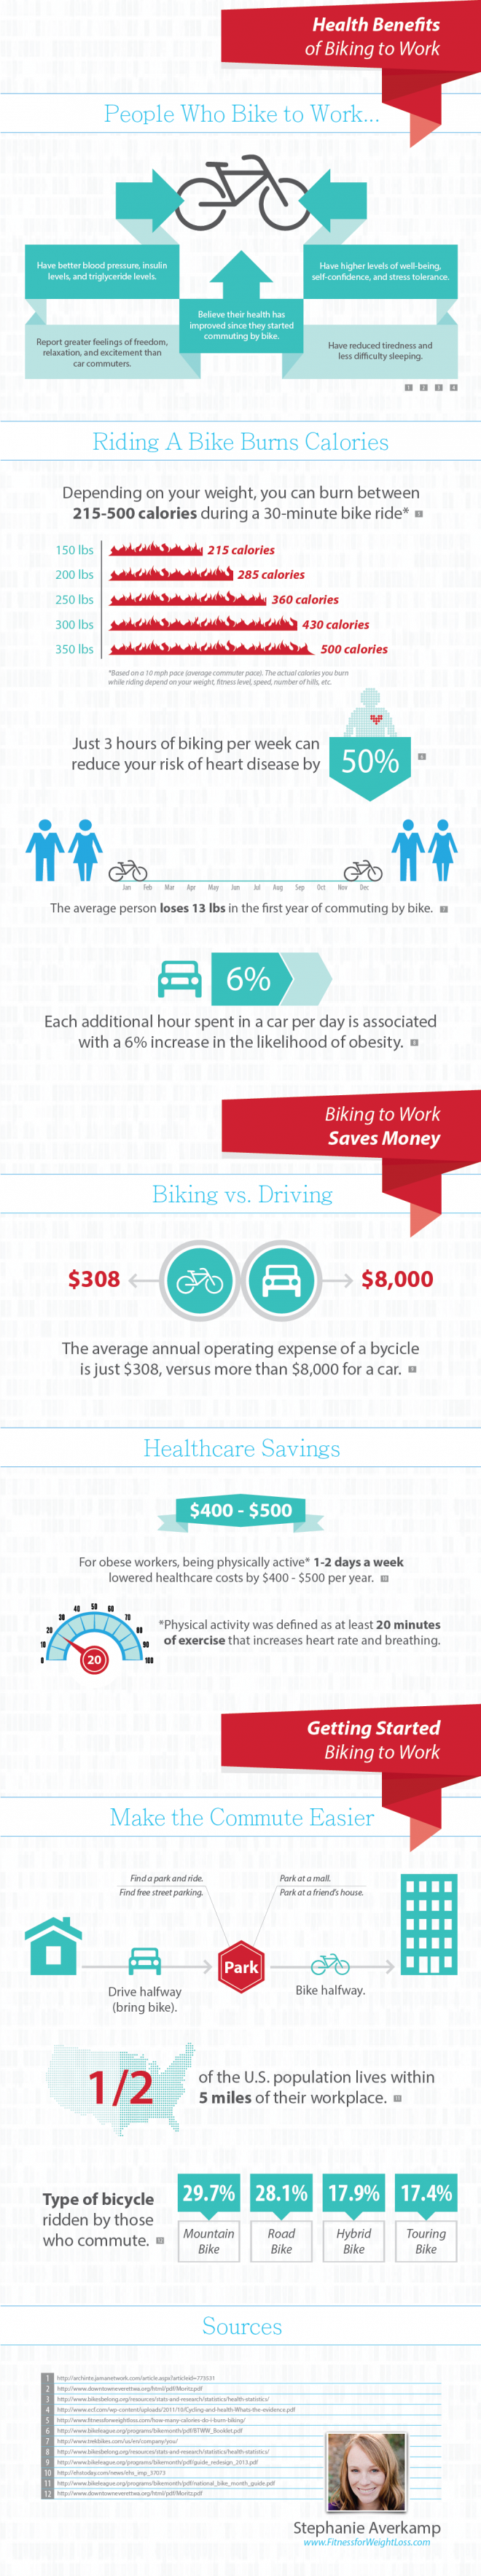 10 Fun, Frugal and Healthy Reasons to Start Riding a Bike to Work - Infographic